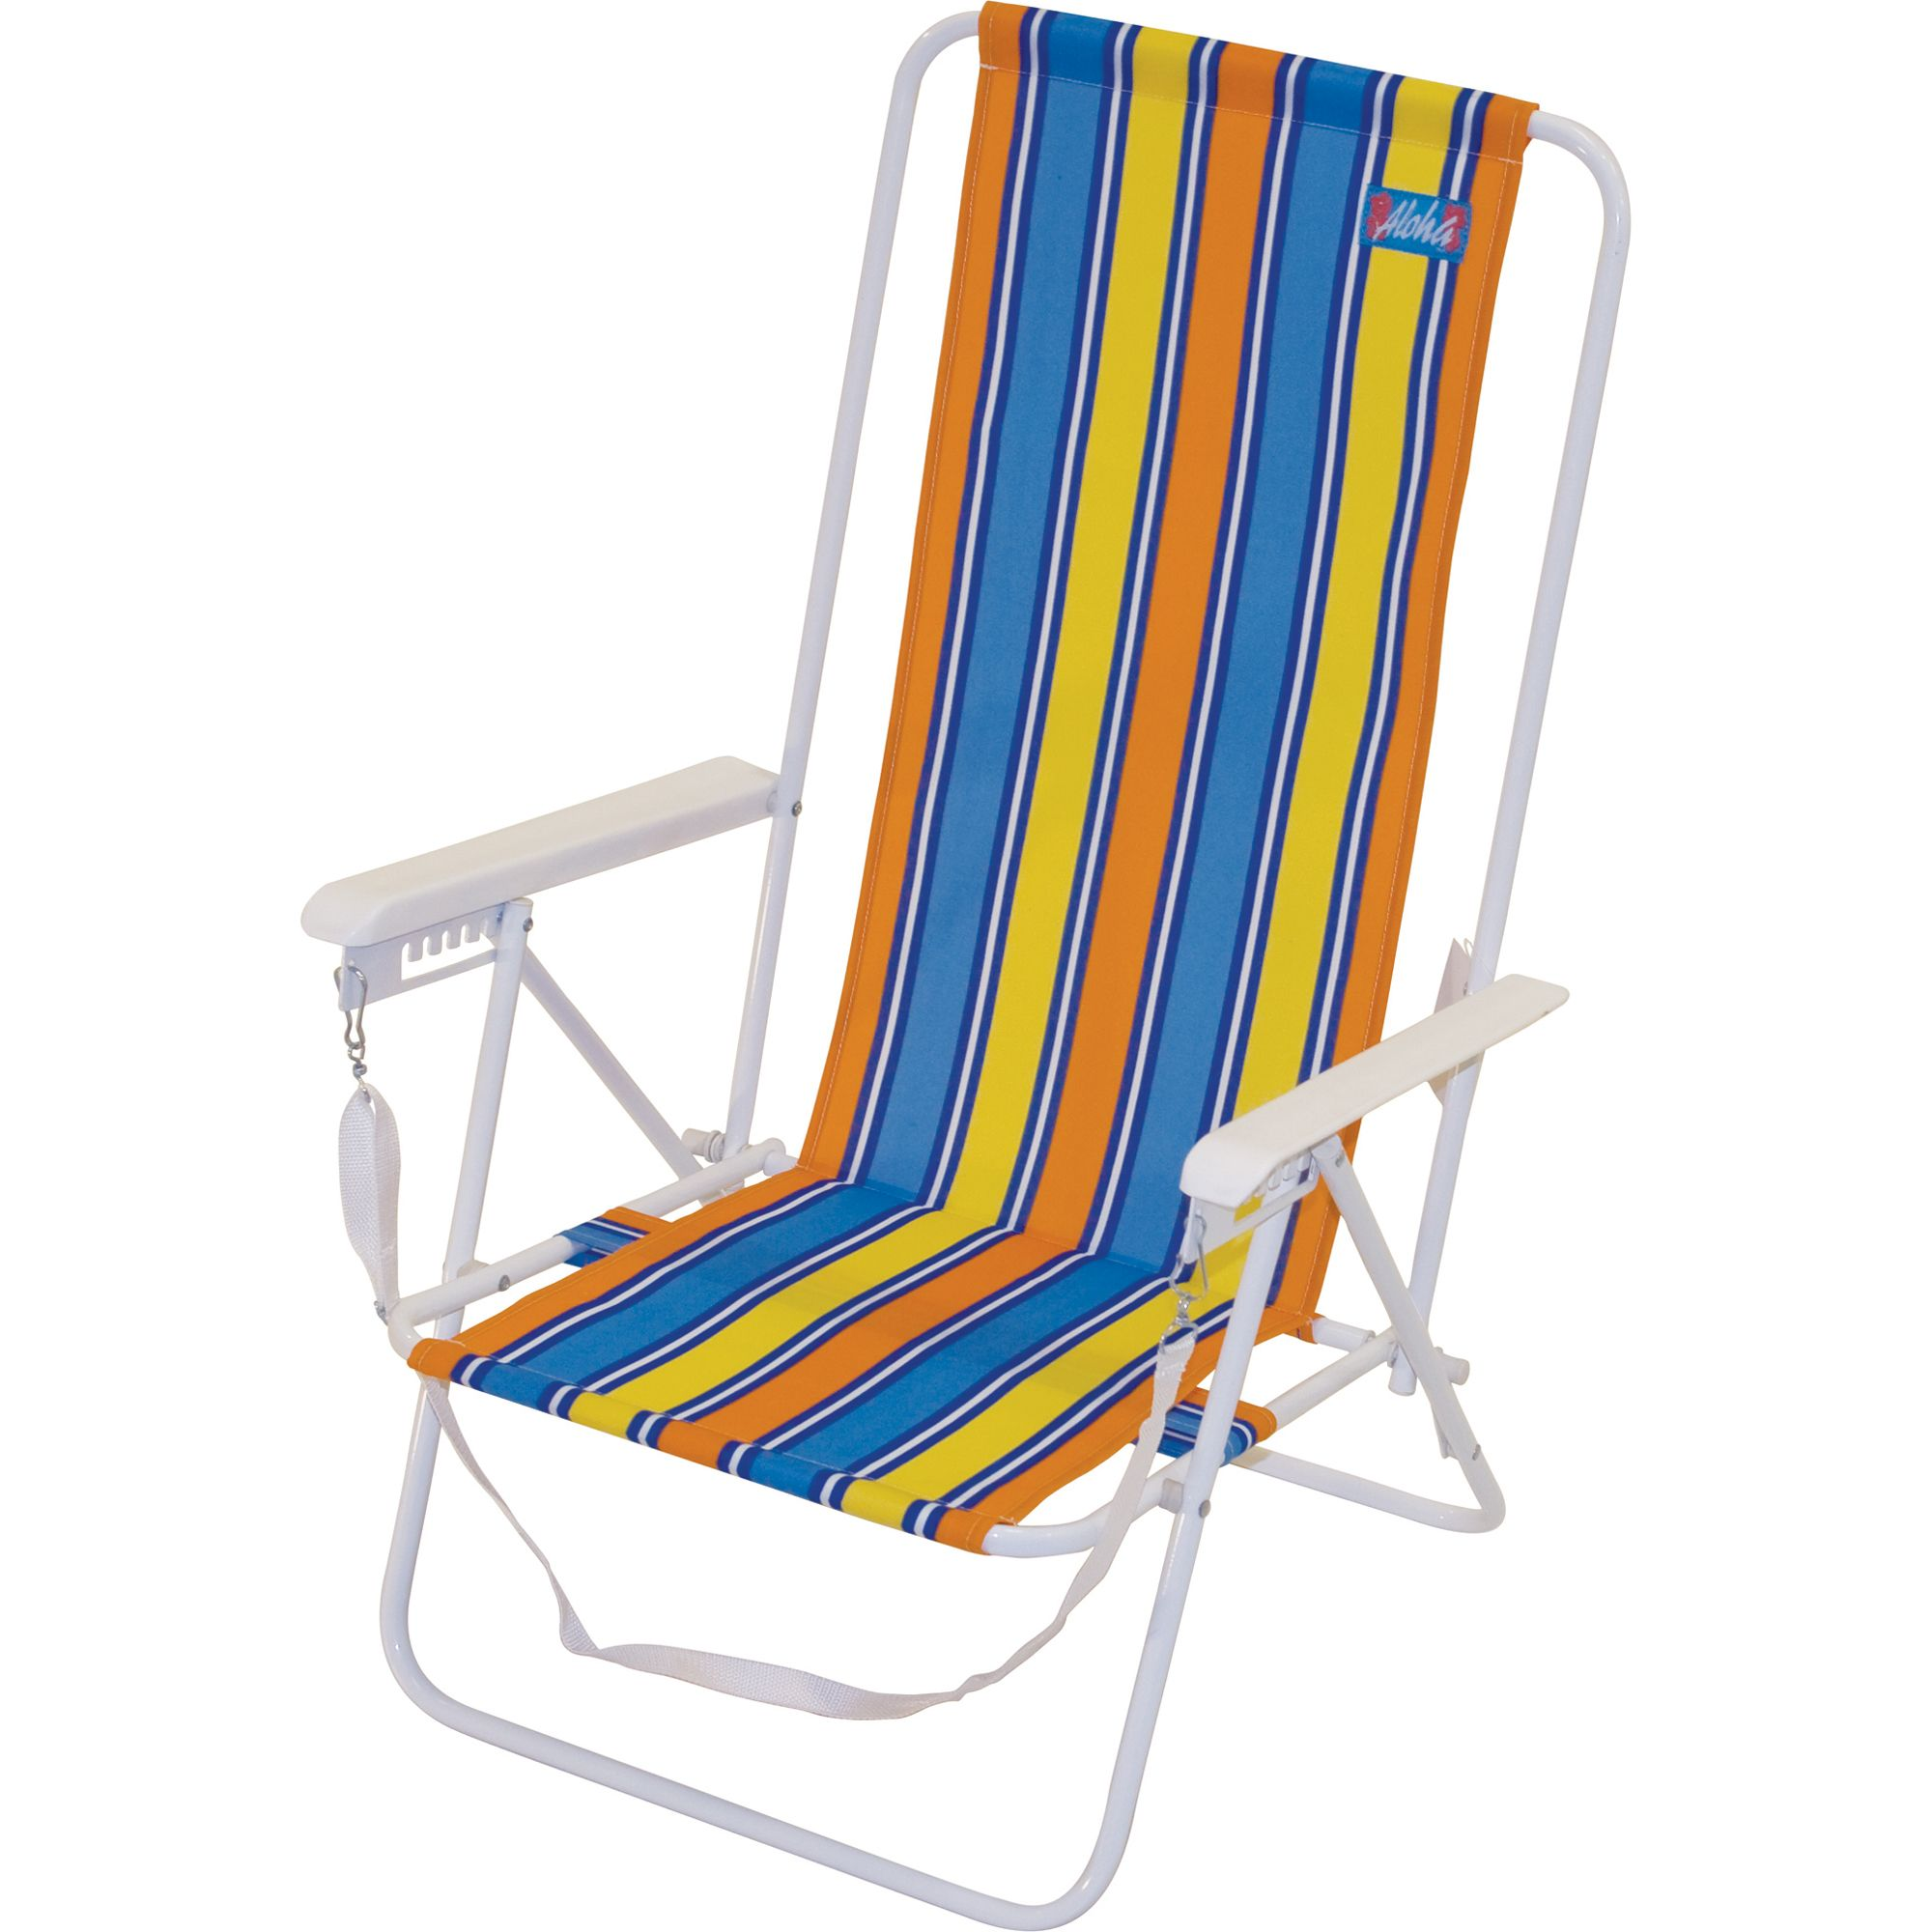 Brazil style high back beach chair outdoor living patio furniture